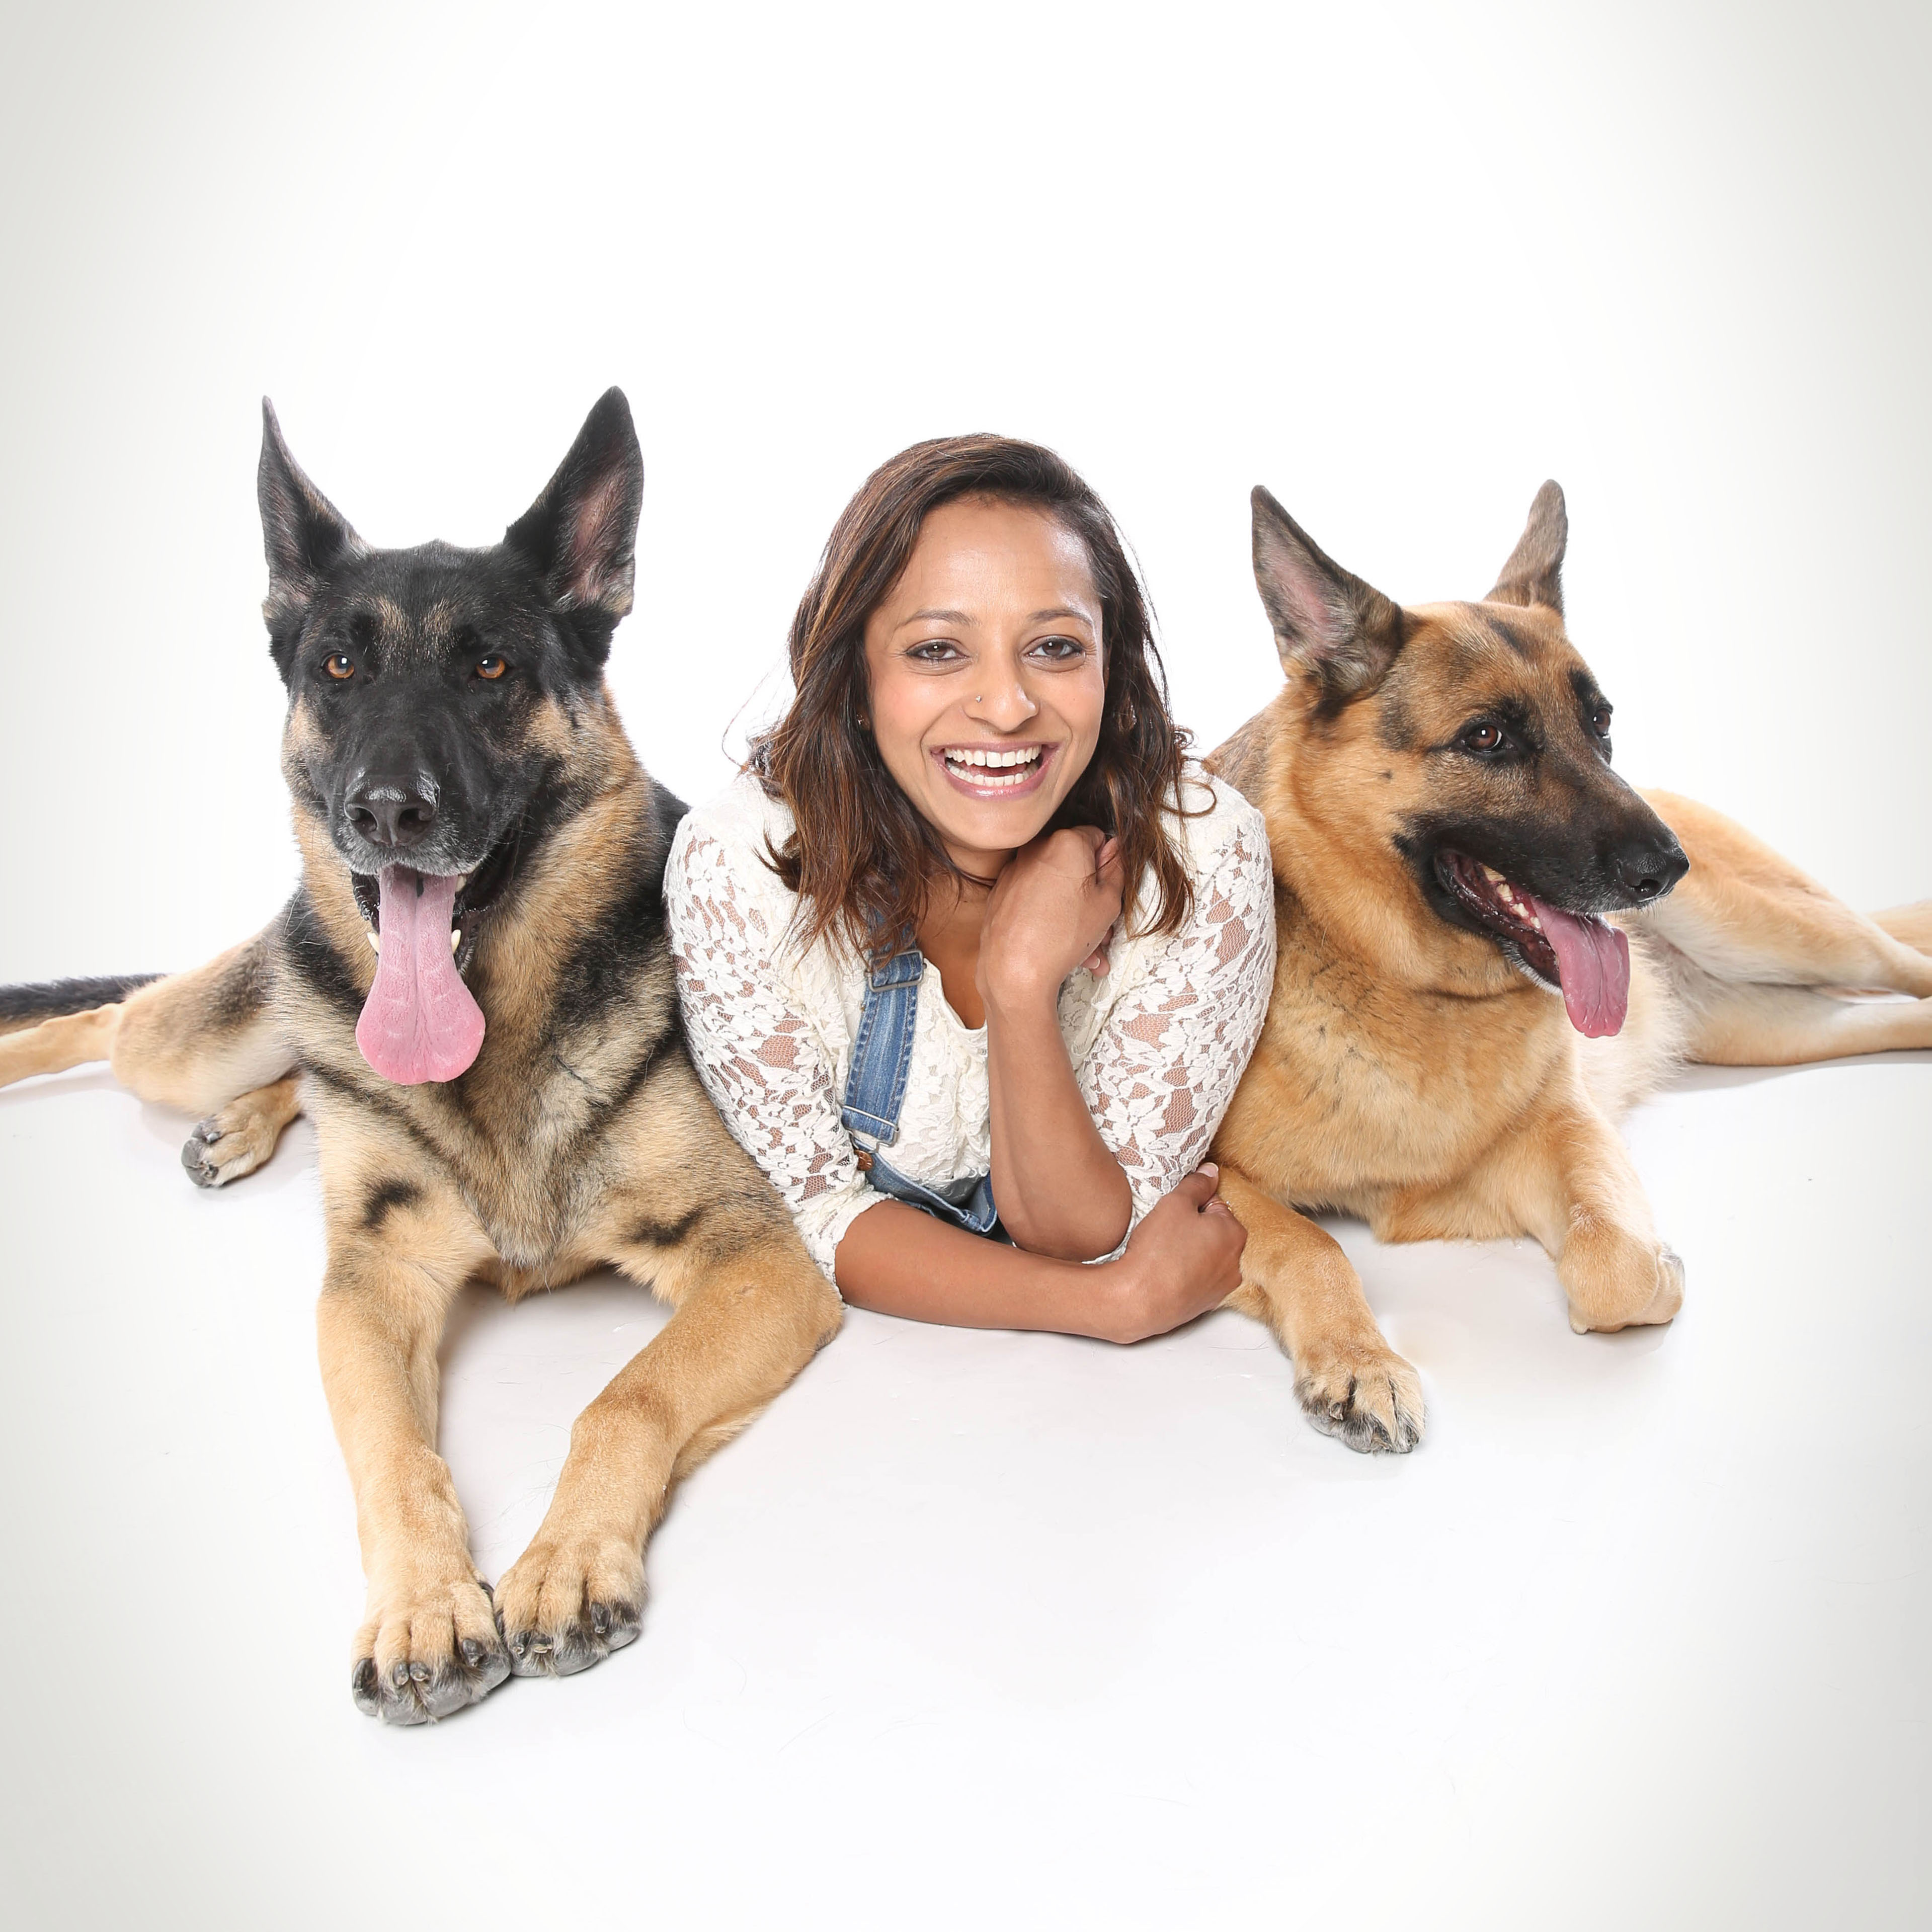 Sandhya and her dogs